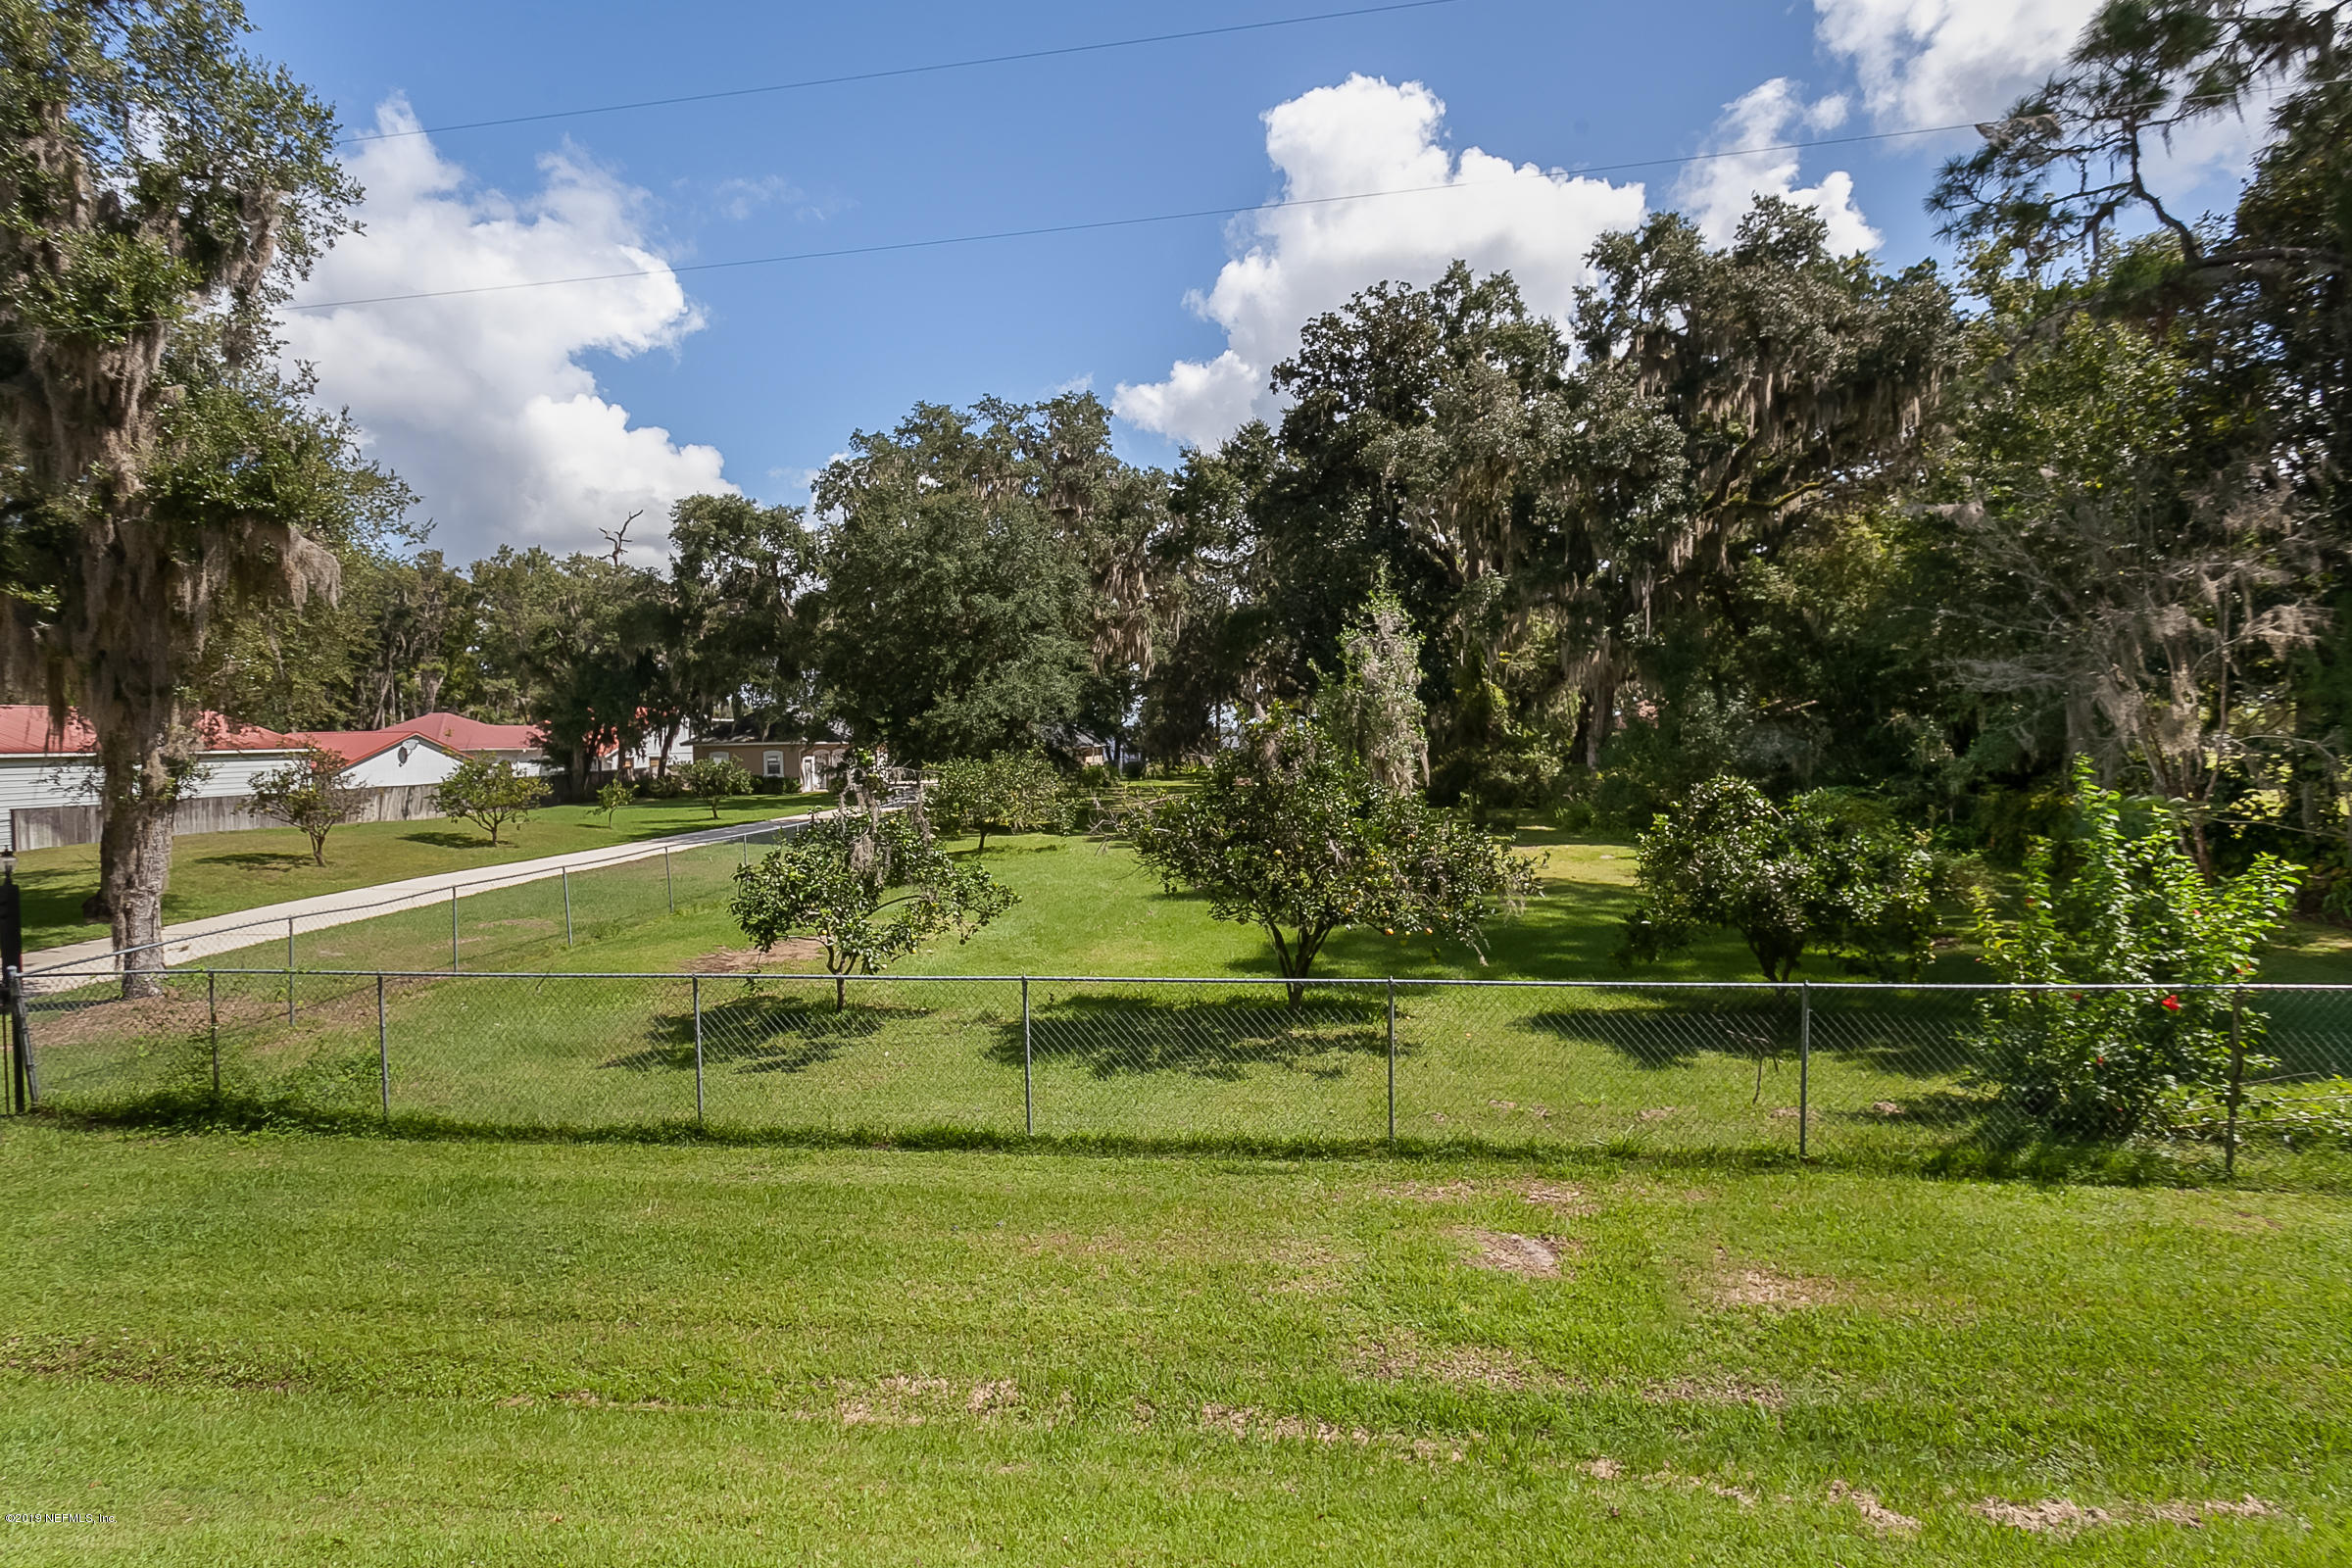 00 ST JOHNS, BOSTWICK, FLORIDA 32177, ,Vacant land,For sale,ST JOHNS,1027154